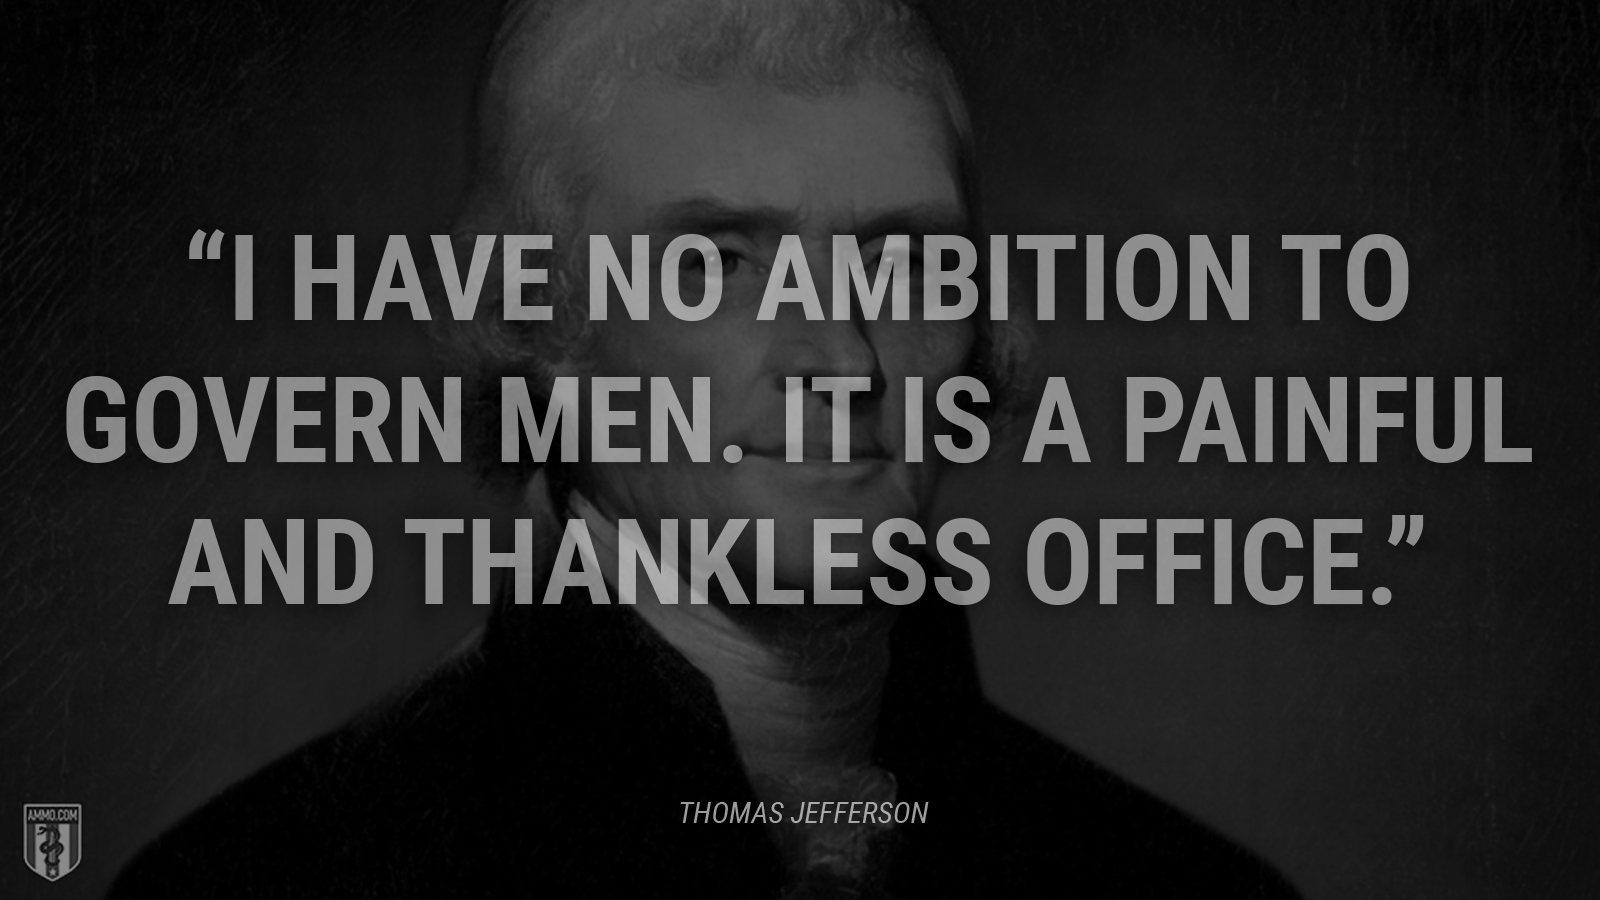 """I have no ambition to govern men. It is a painful and thankless office."" - Thomas Jefferson"